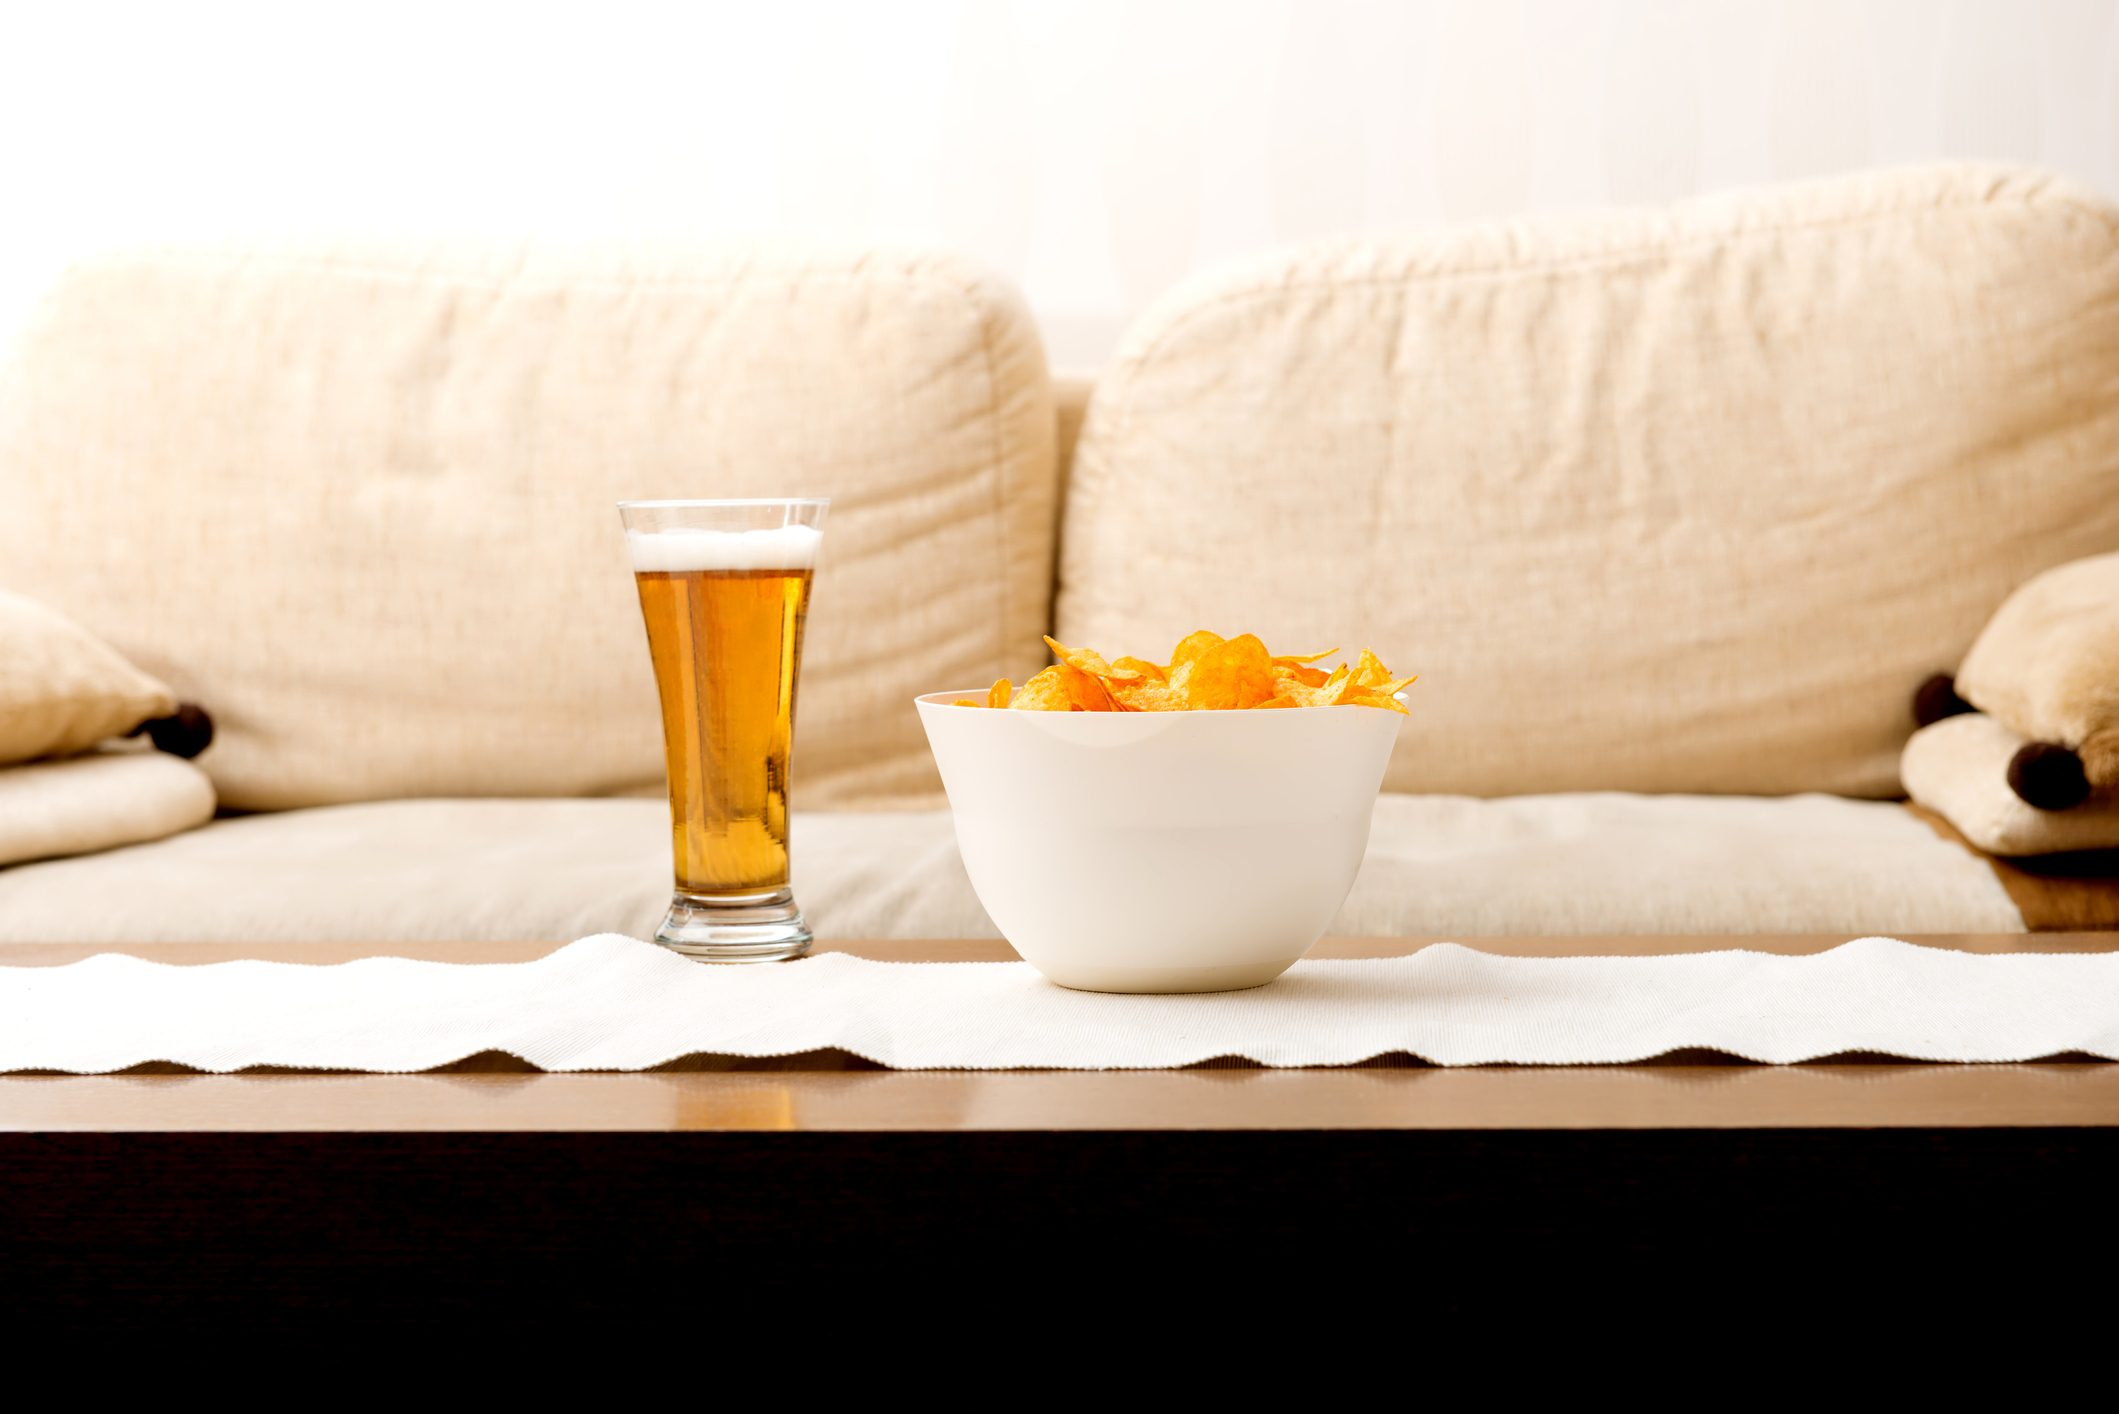 Close-Up Of Beer And Snack In Bowl On Table At Home